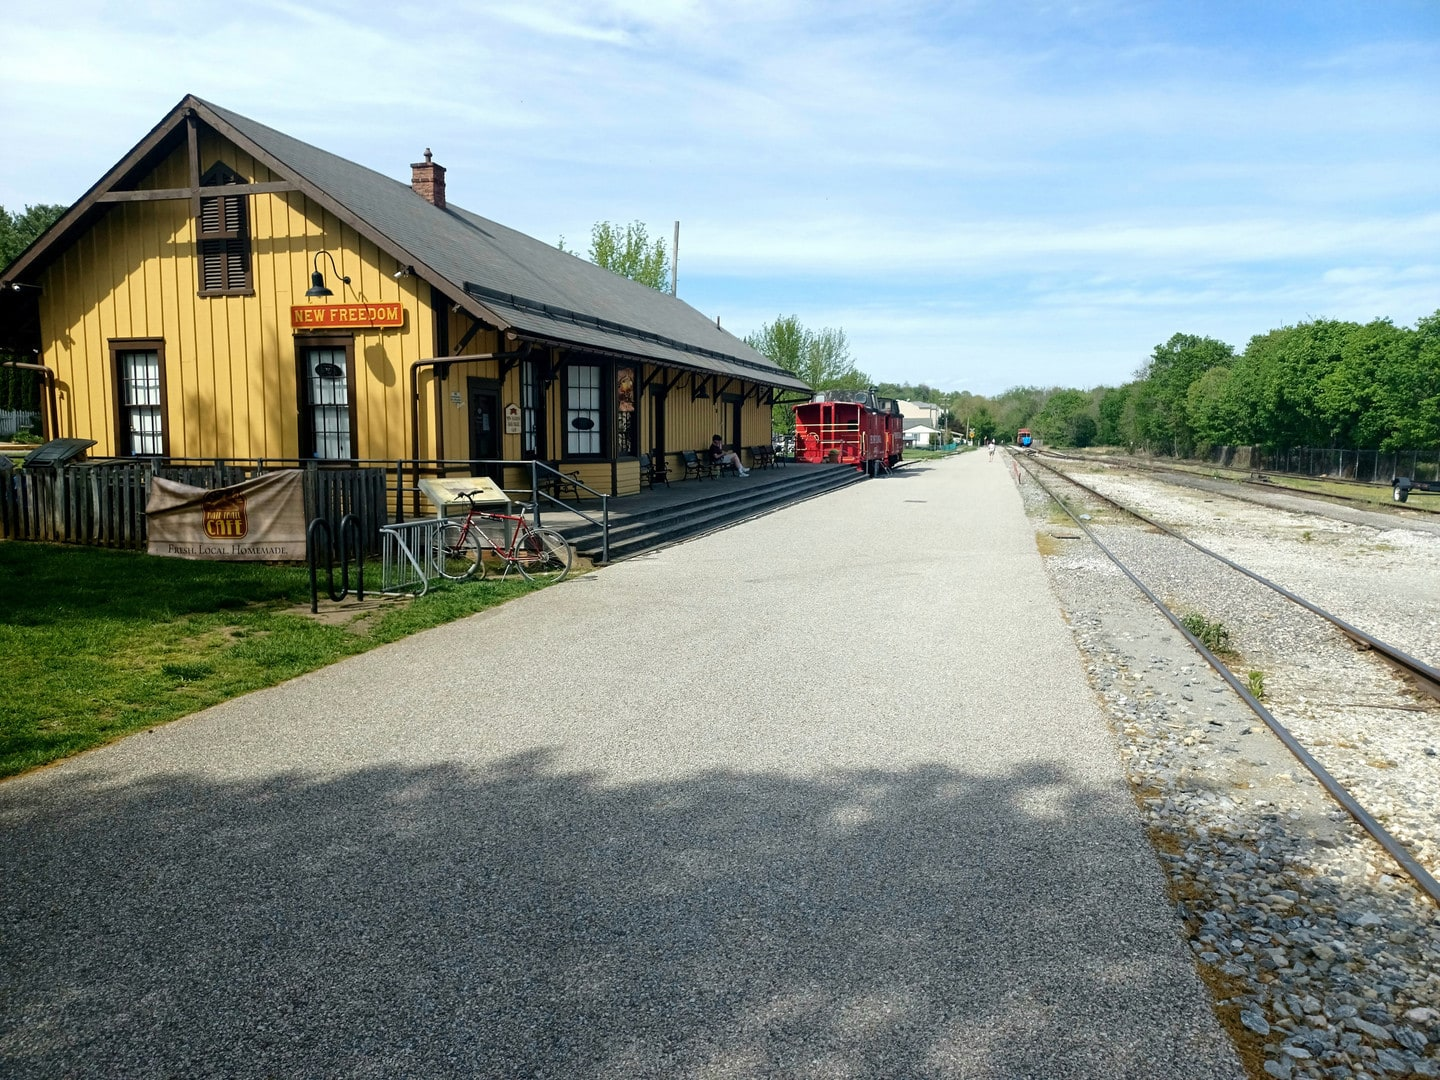 A wide gravel trail runs between the railroad and an old yellow railroad building